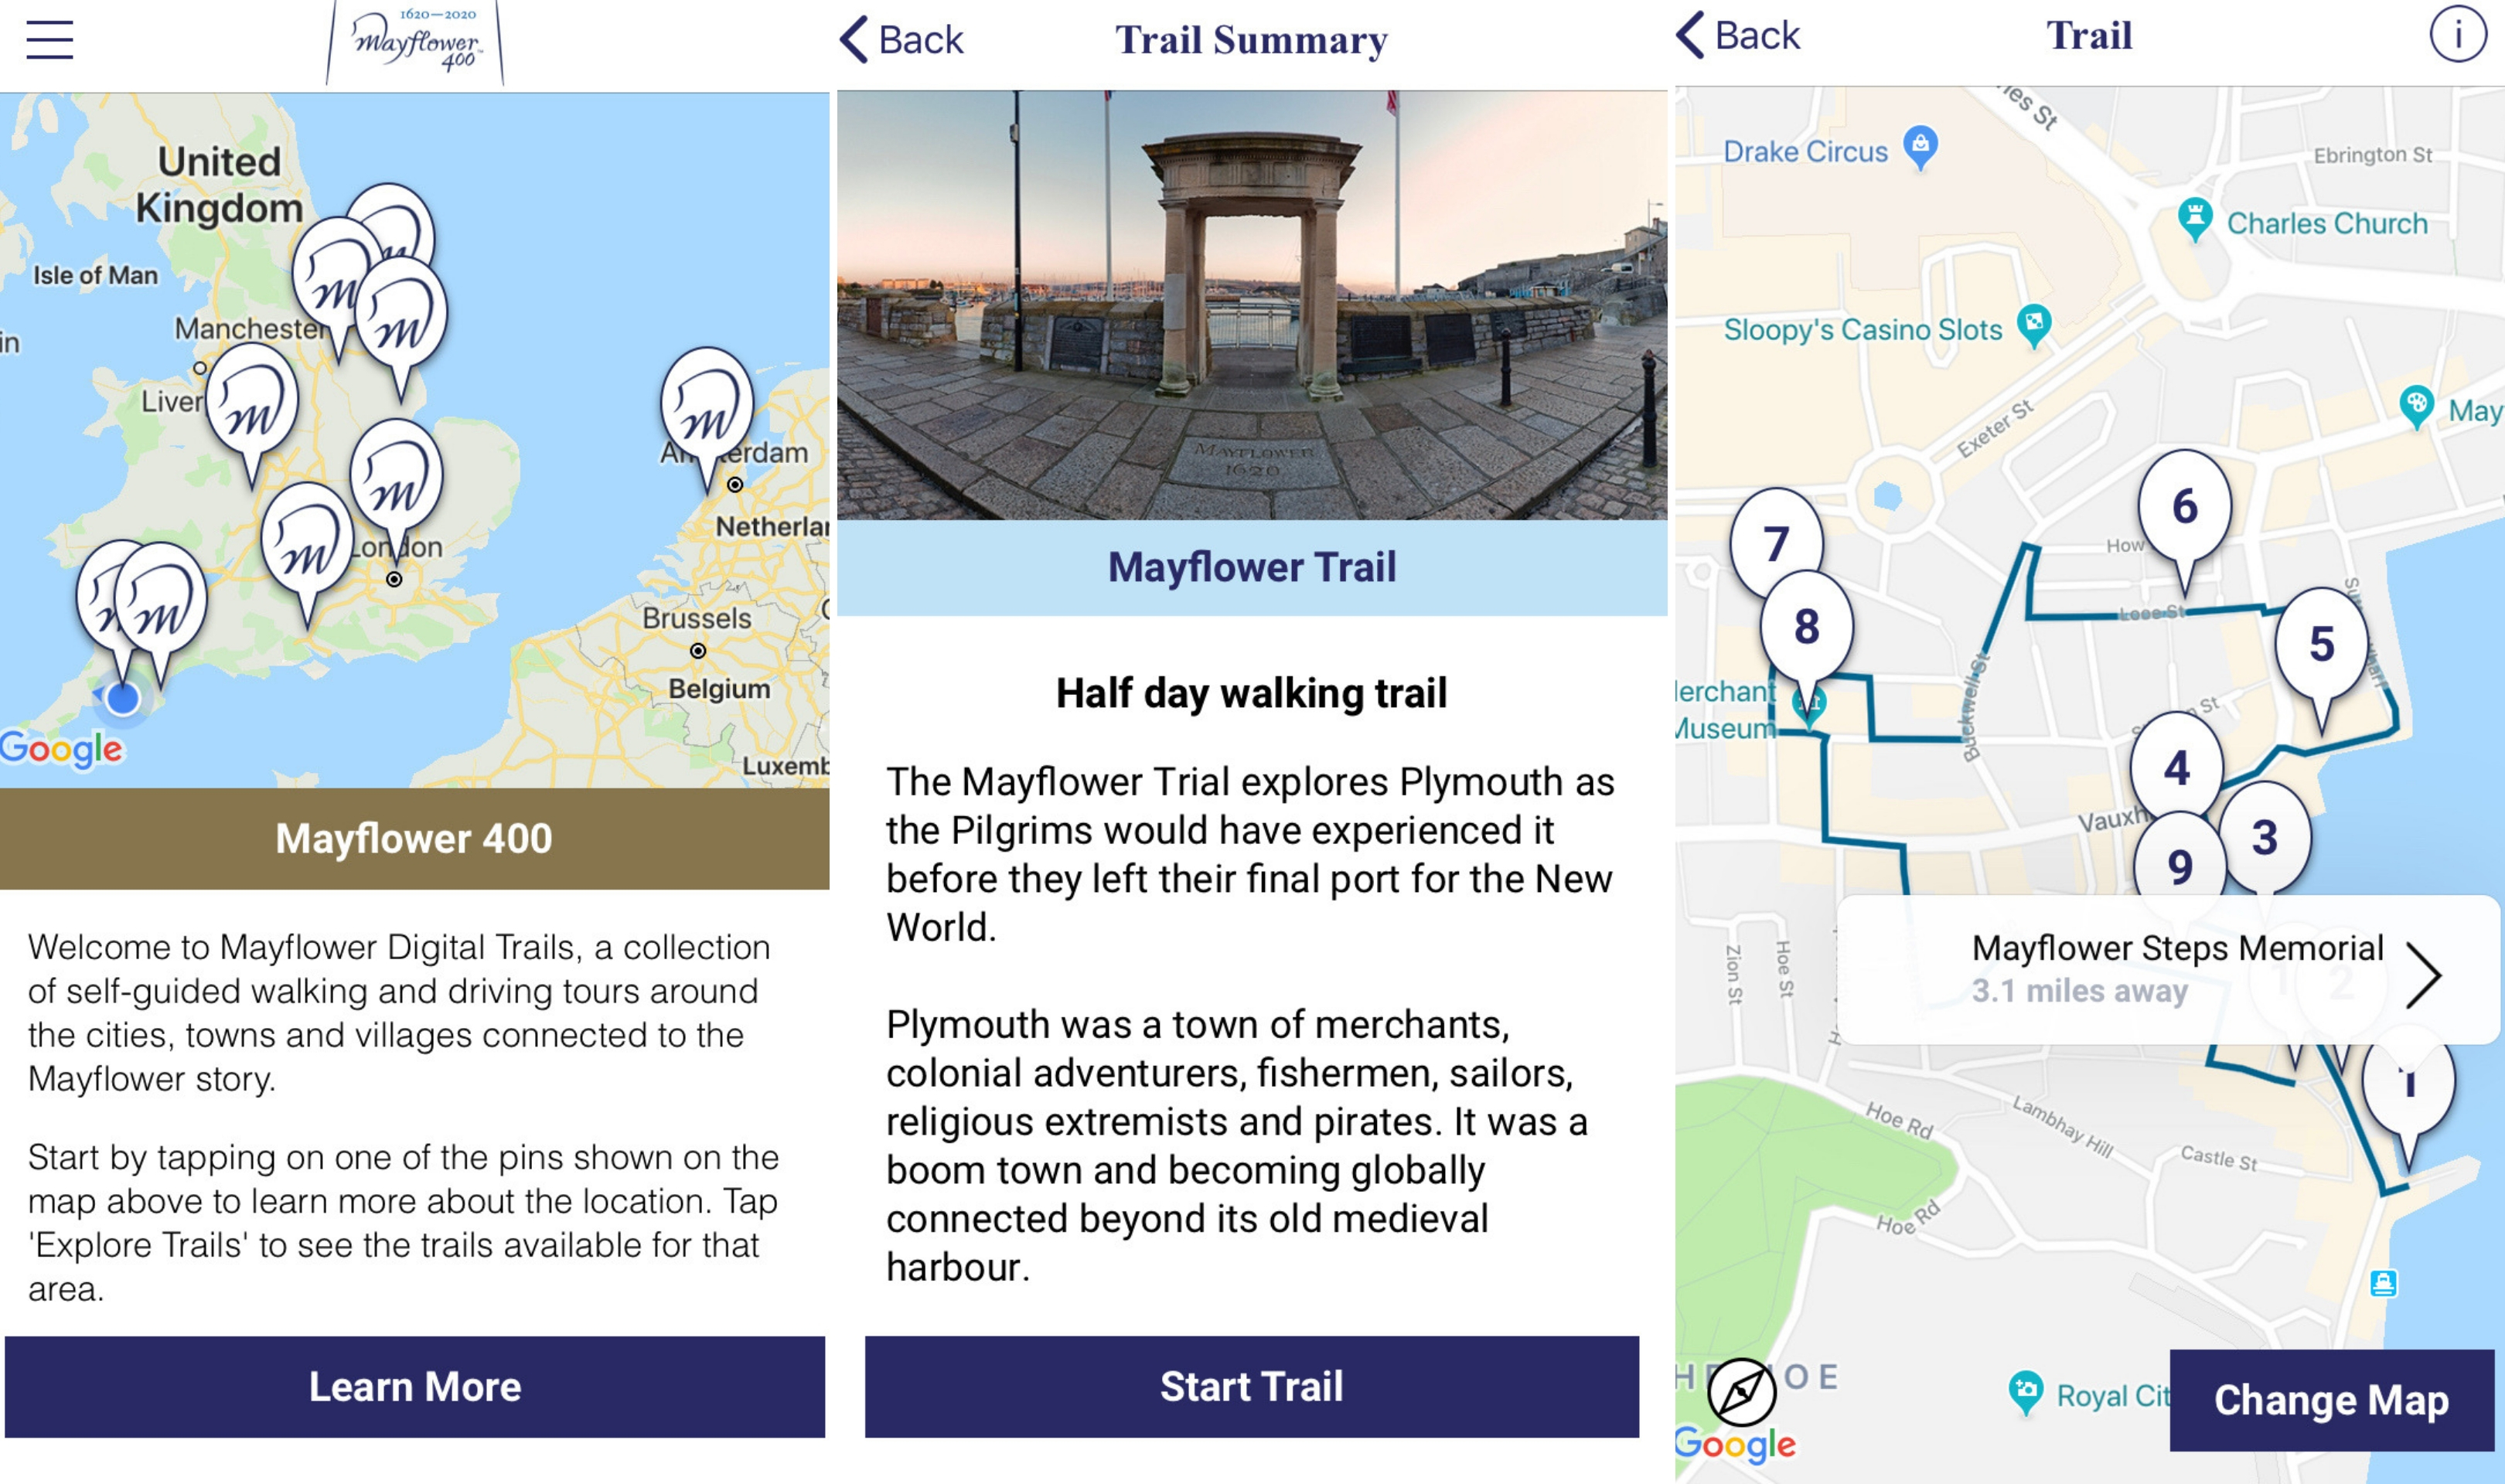 Mayflower Trails App